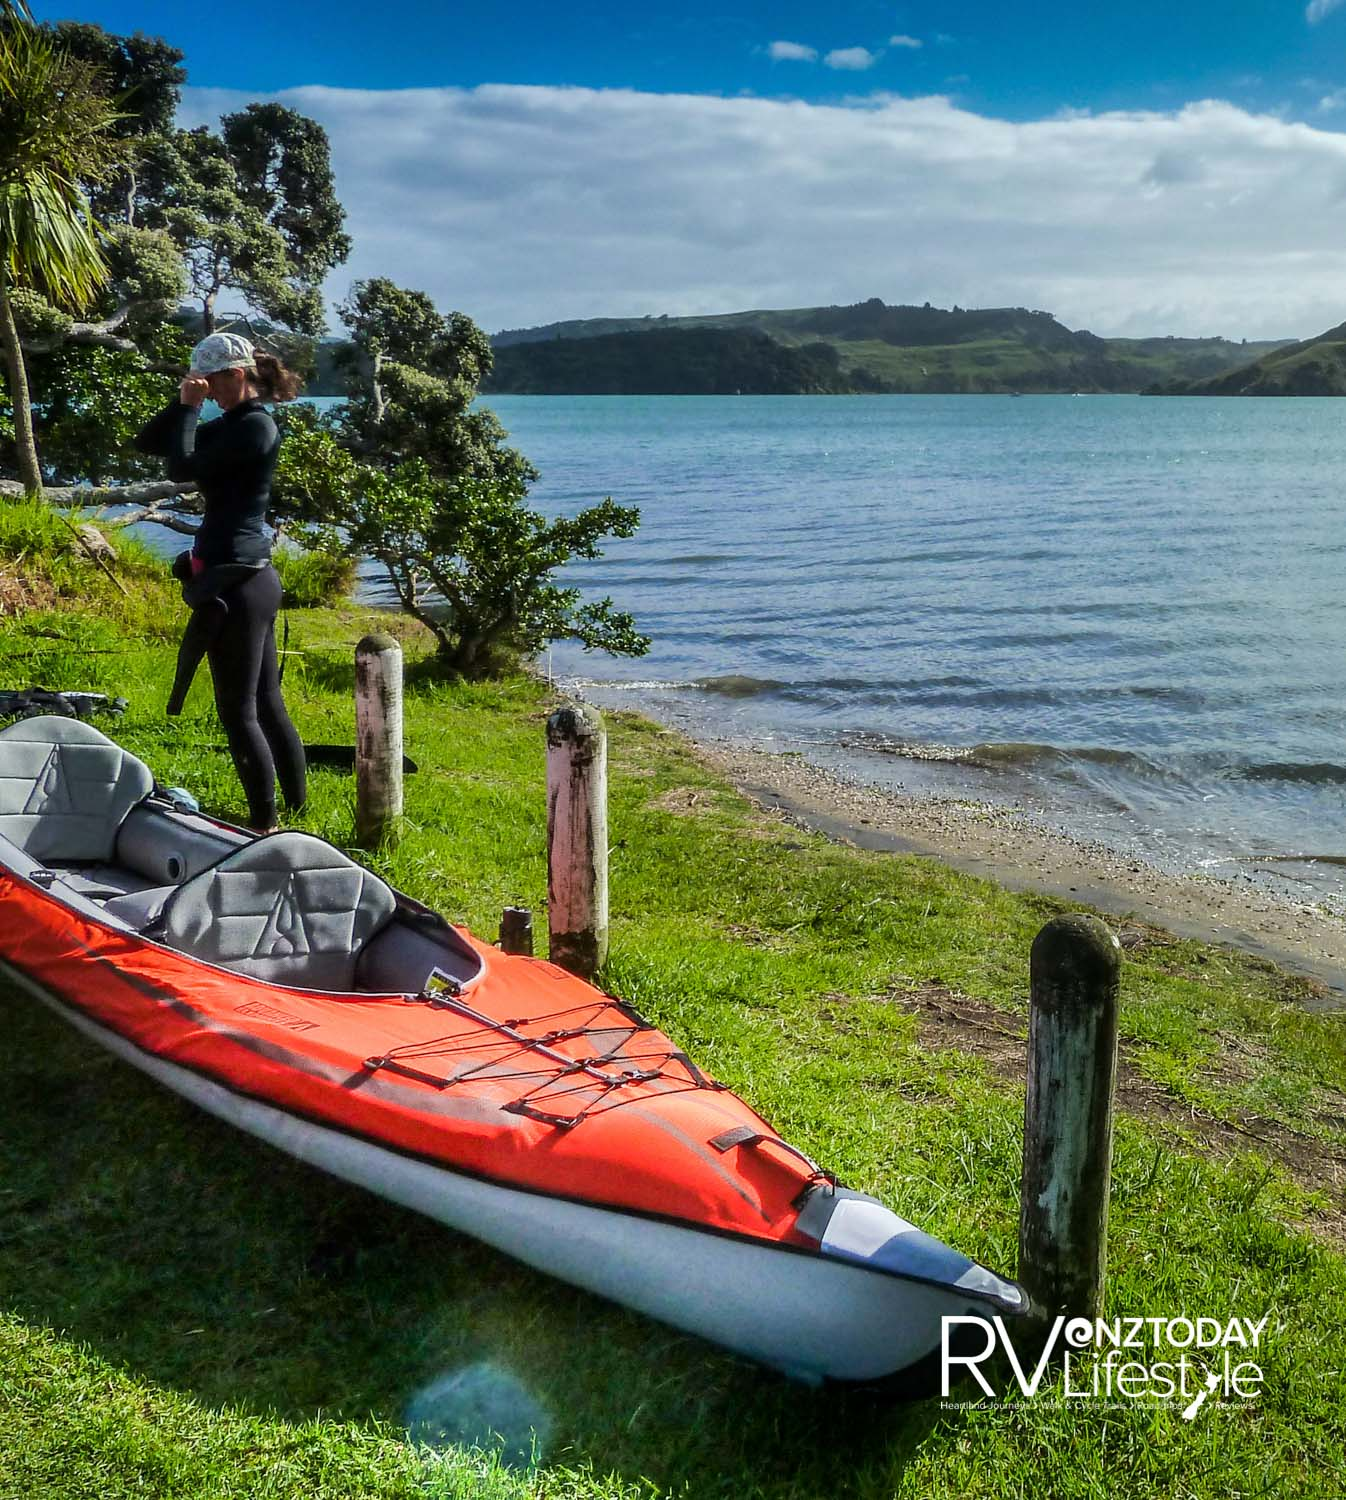 Setting up our inflatable kayak